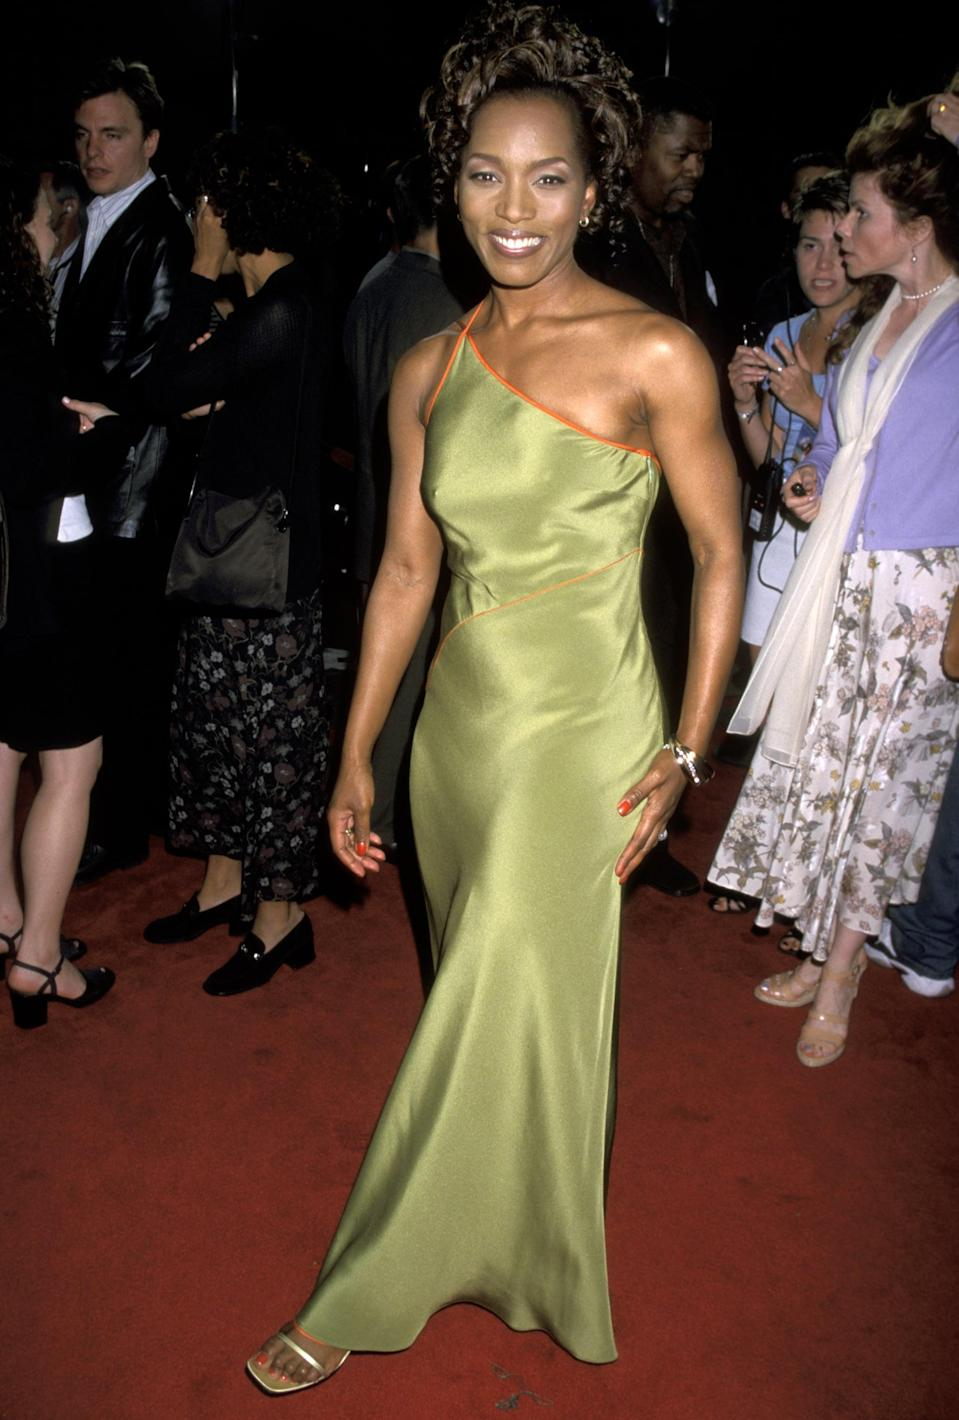 <p>Angela Bassett looked divine in this satin green one-shoulder dress at the <strong>How Stella Got Her Groove Back </strong>premiere in 1998. The thin orange accents added a pop of contrast, and she finished the outfit with effortless strappy sandals. </p>